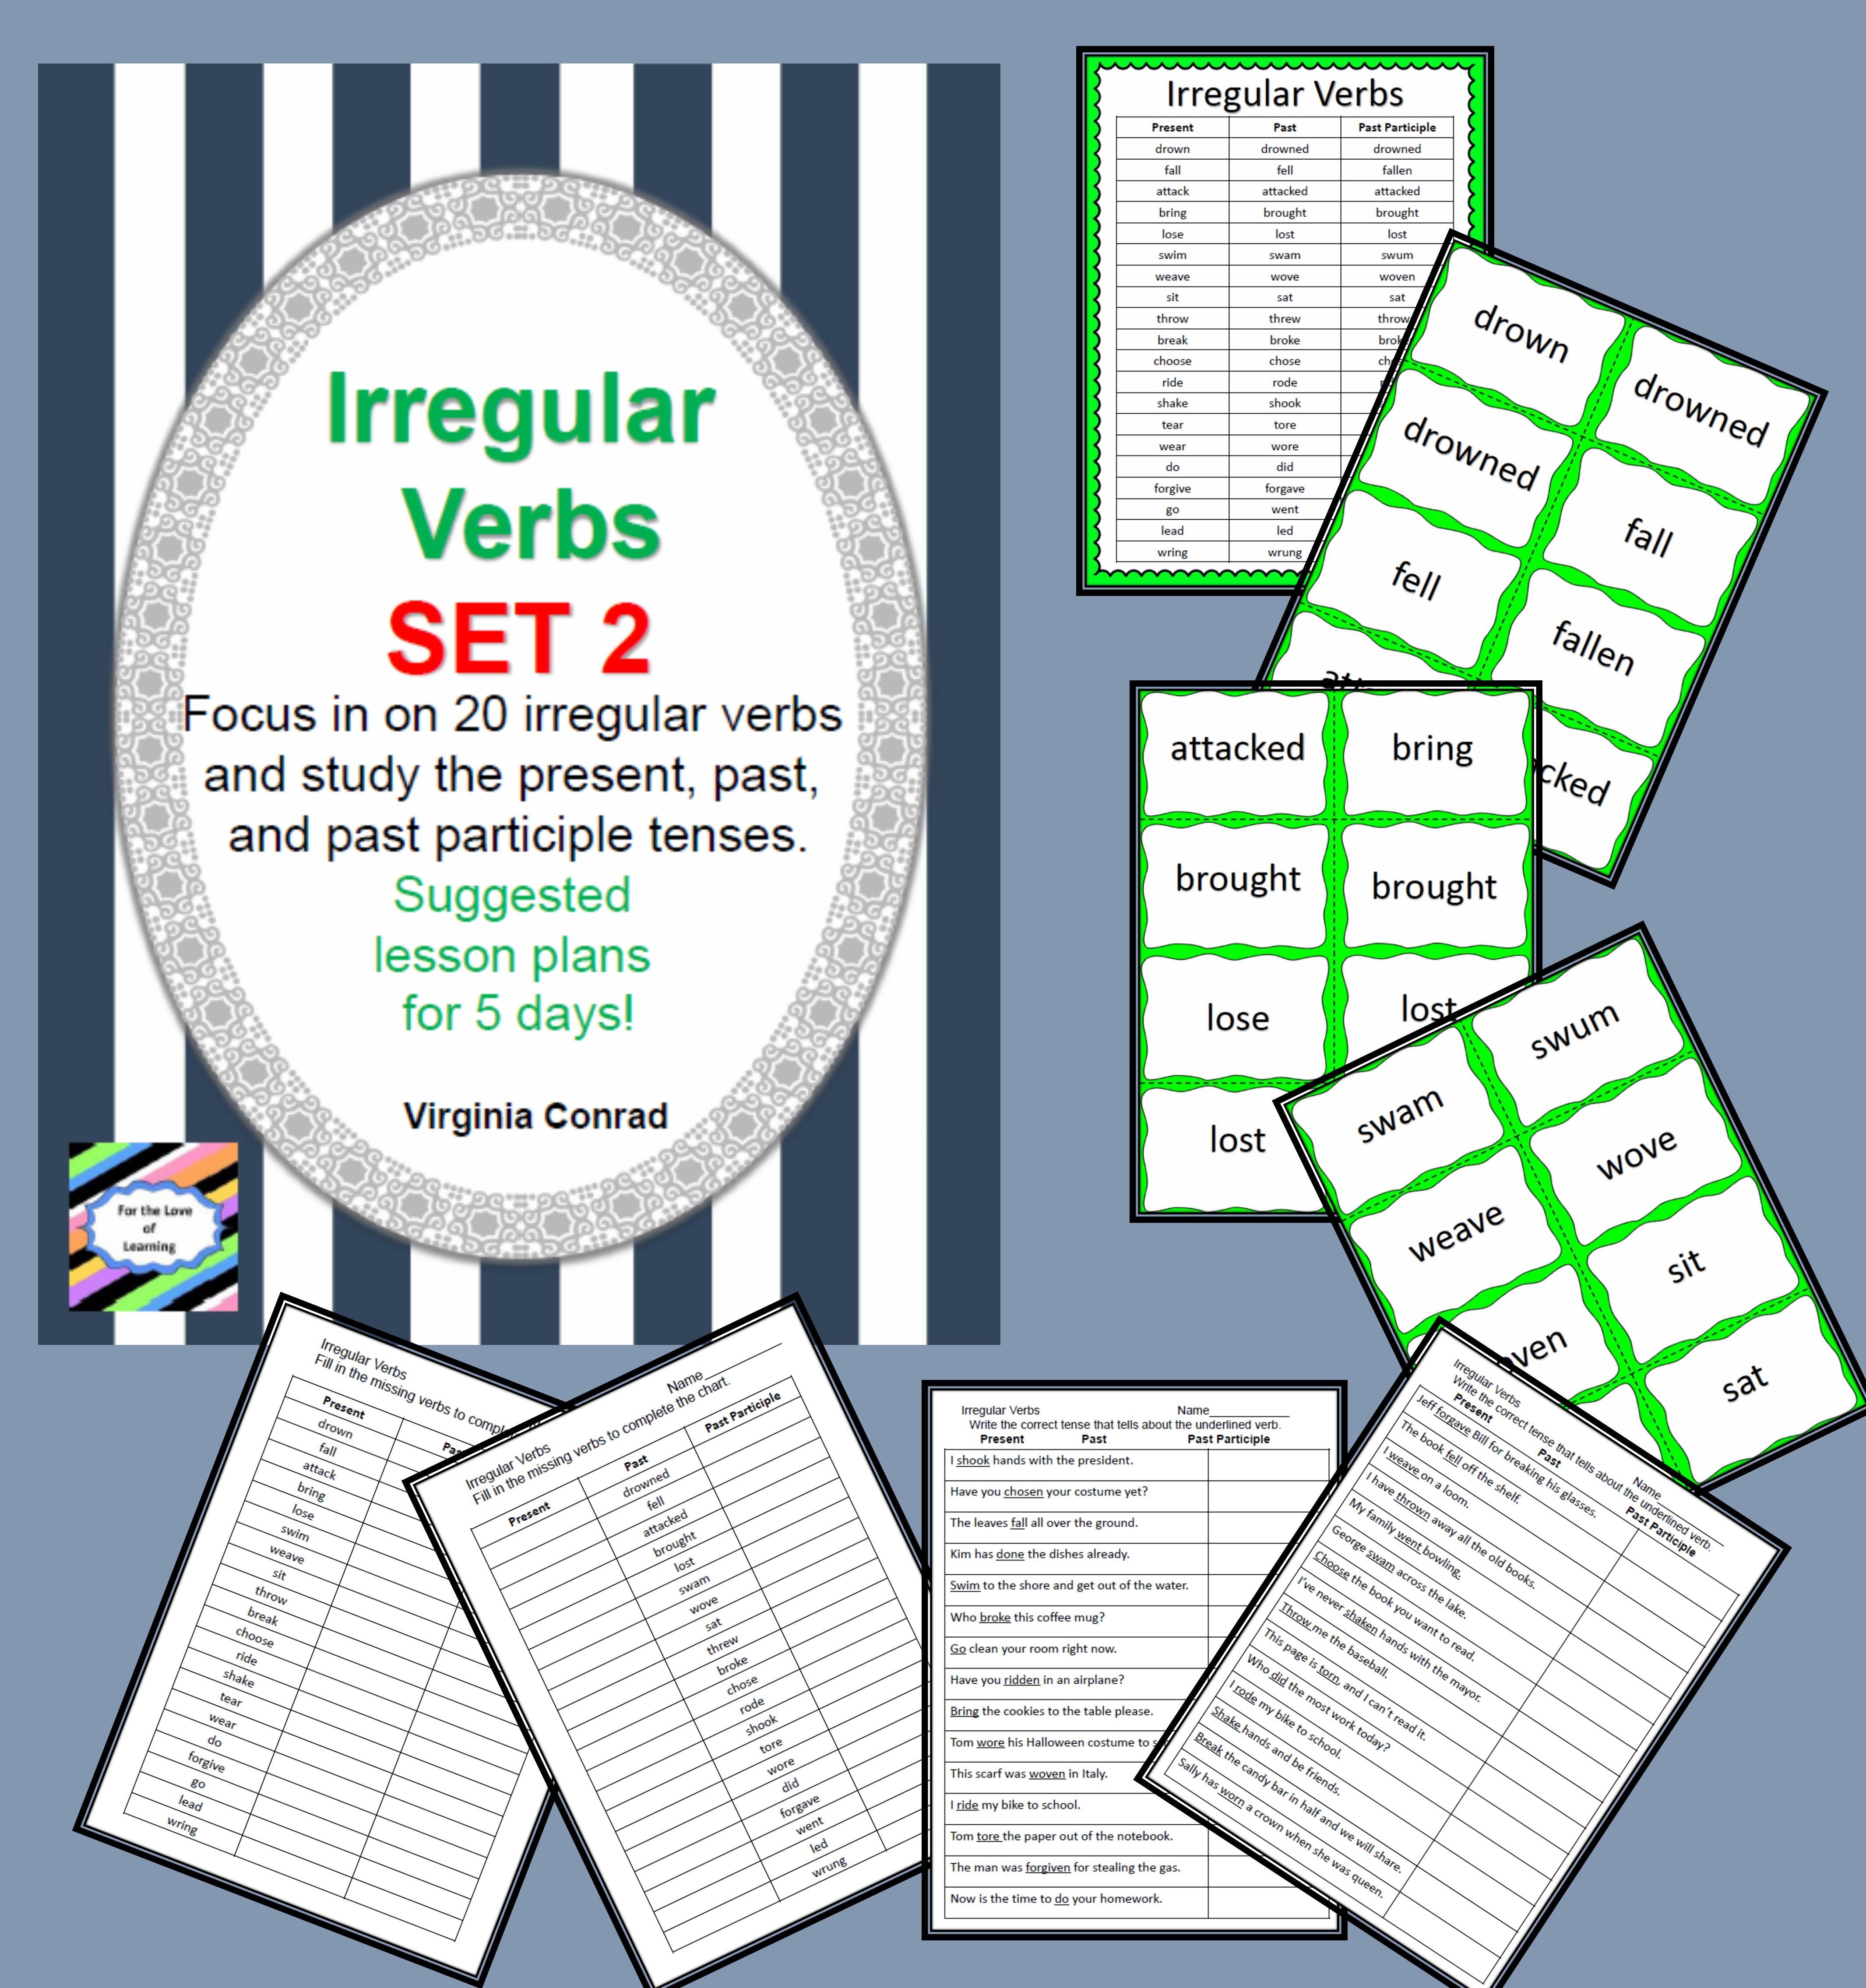 Irregular Verbs Set 2